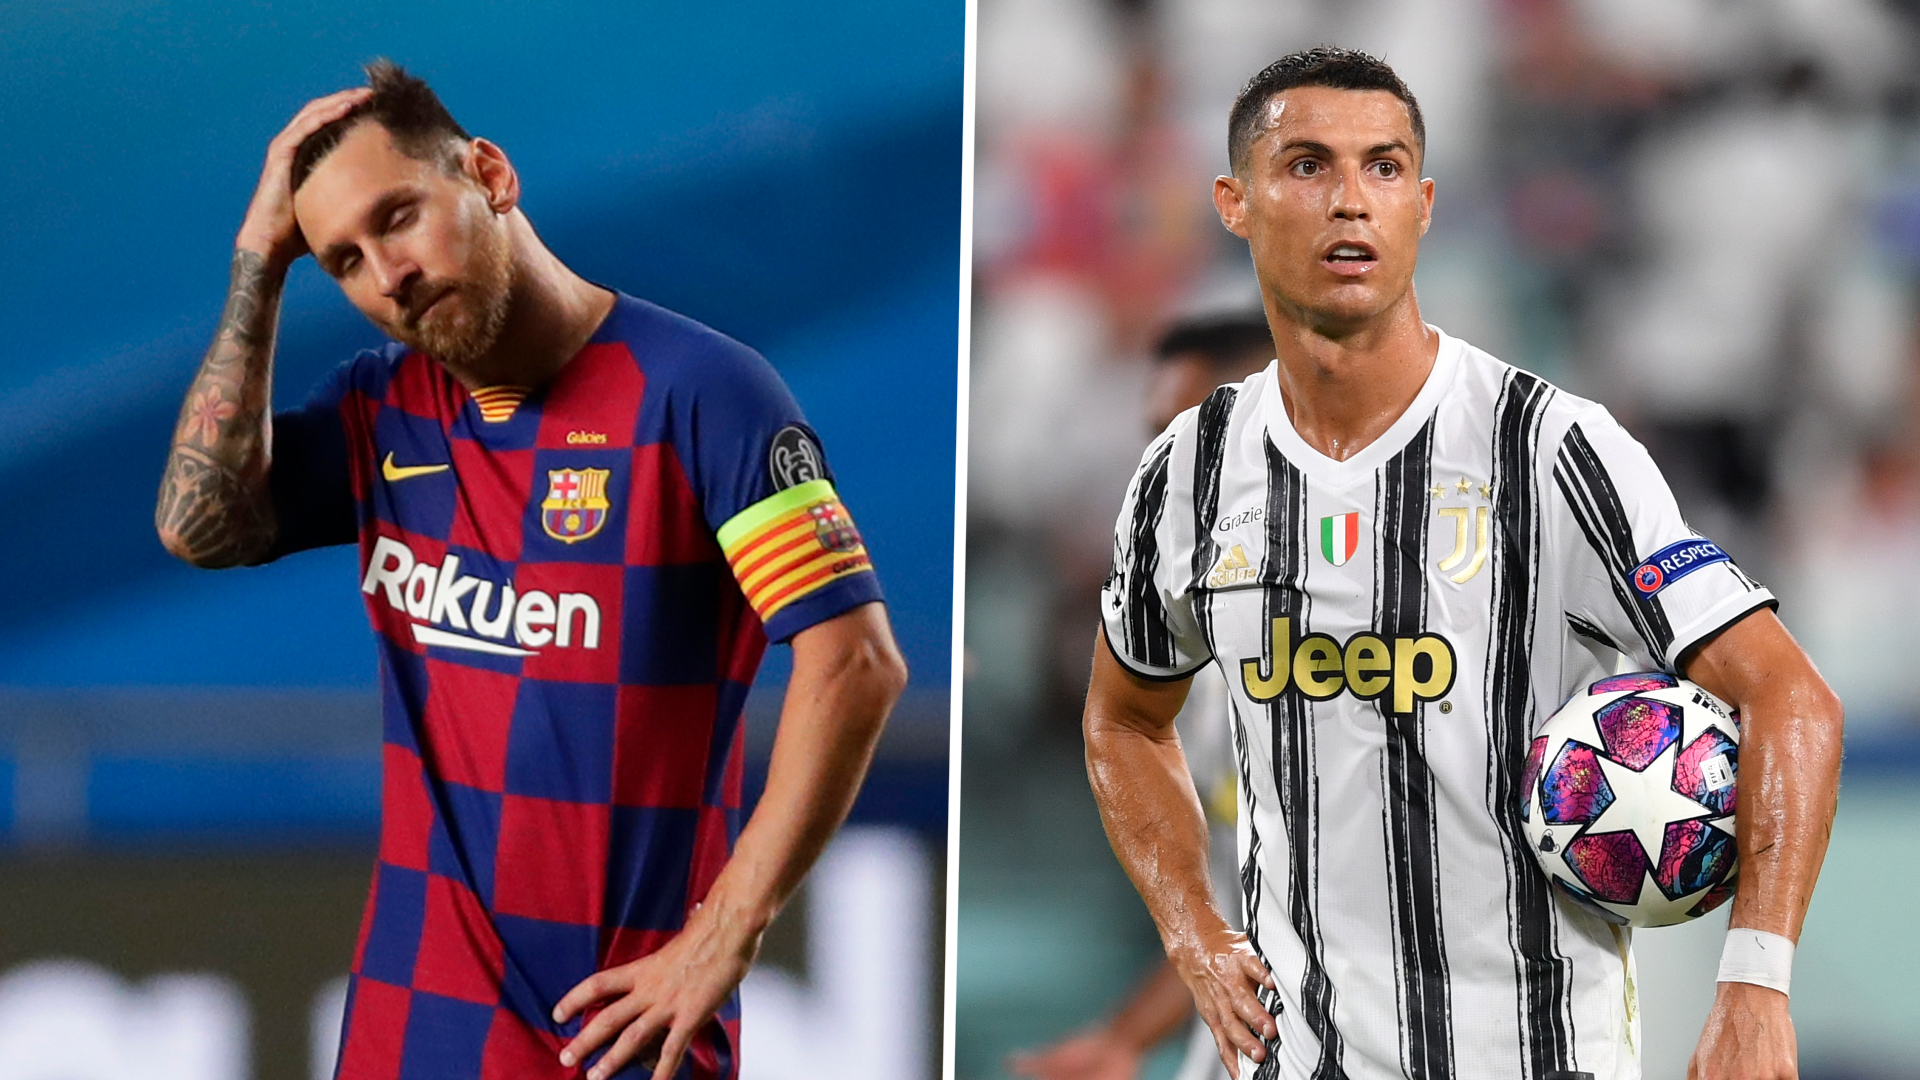 No Messi or Ronaldo in UEFA Men's Player of the Year nominations for first  time in 10 years as De Bruyne & Lewandowski battle it out | Goal.com